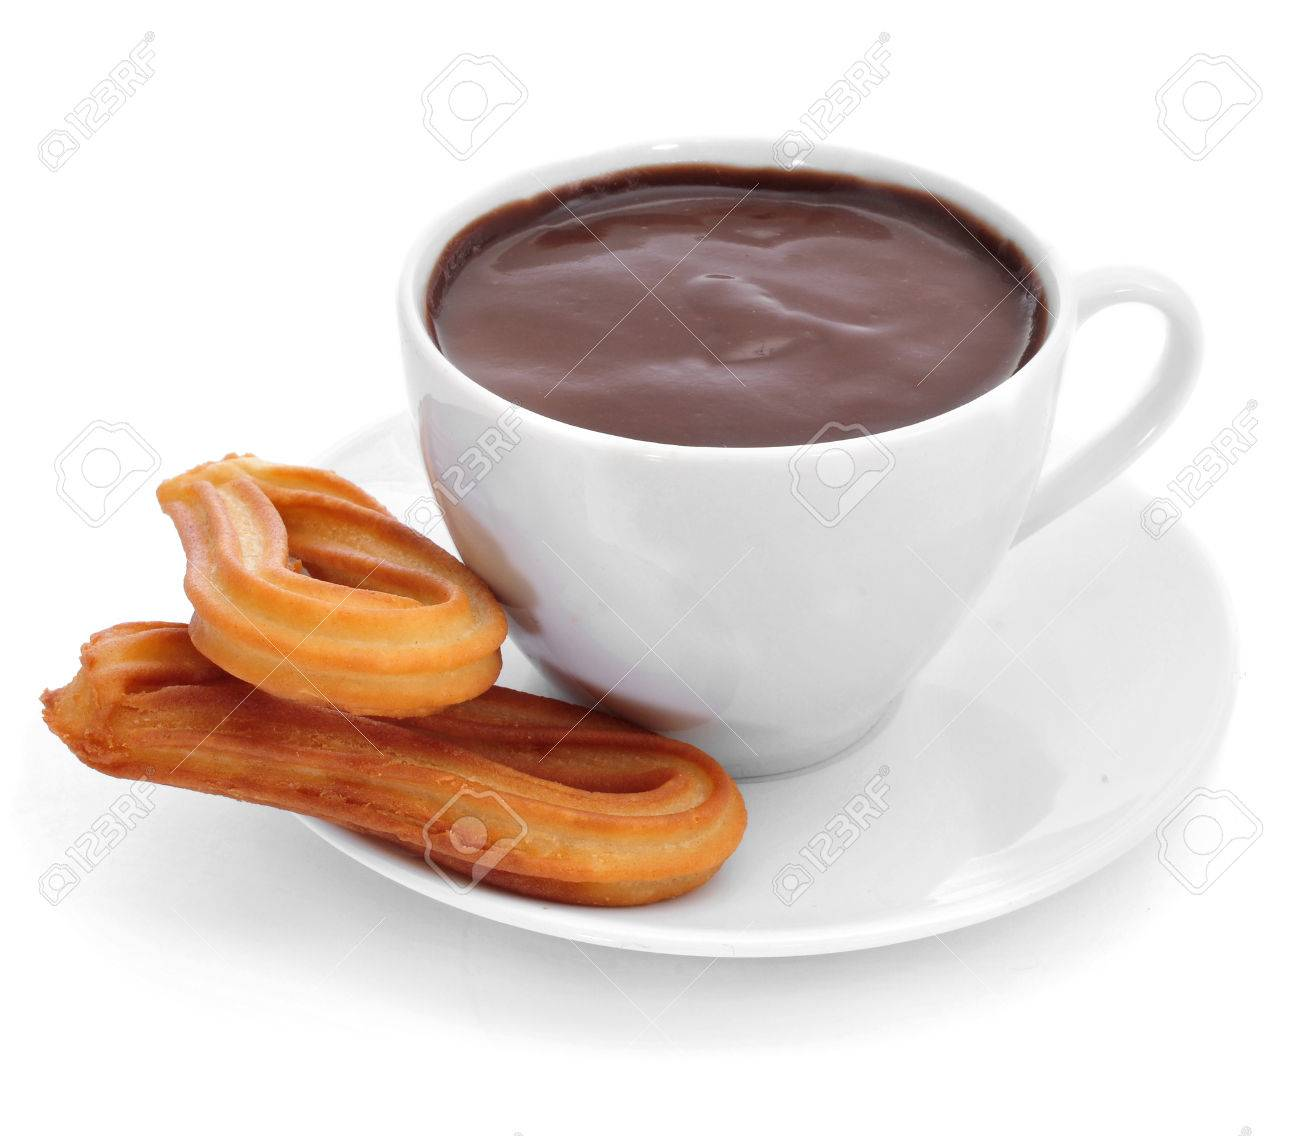 Churros Con Chocolate, A Typical Spanish Sweet Snack, On A White ...